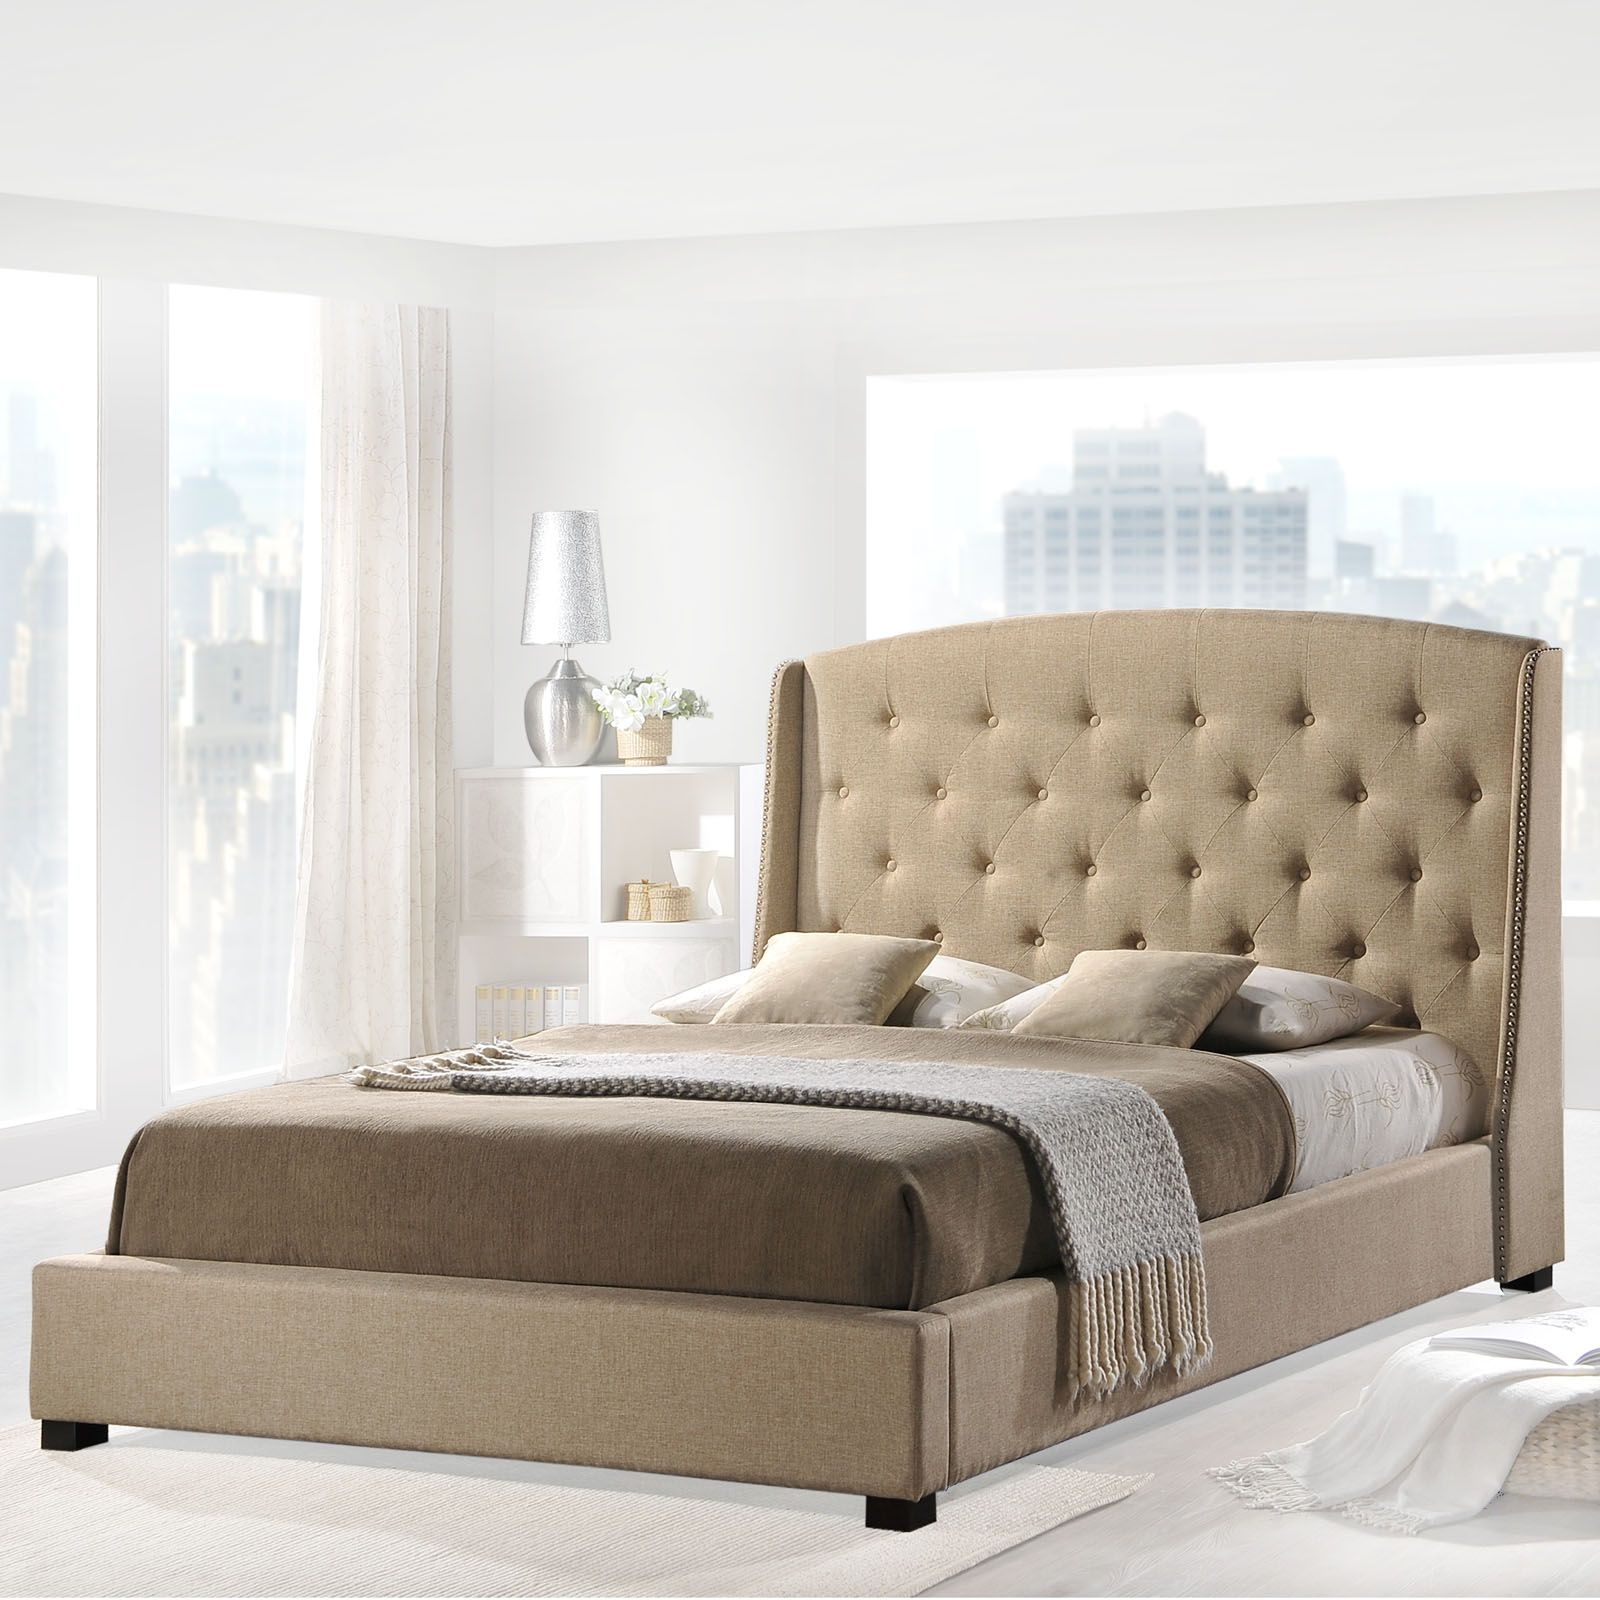 Add a #PopOfColor to your #SpringDecor with a gorgeous new bed from Beyond Stores. #homedecor #beyondstores